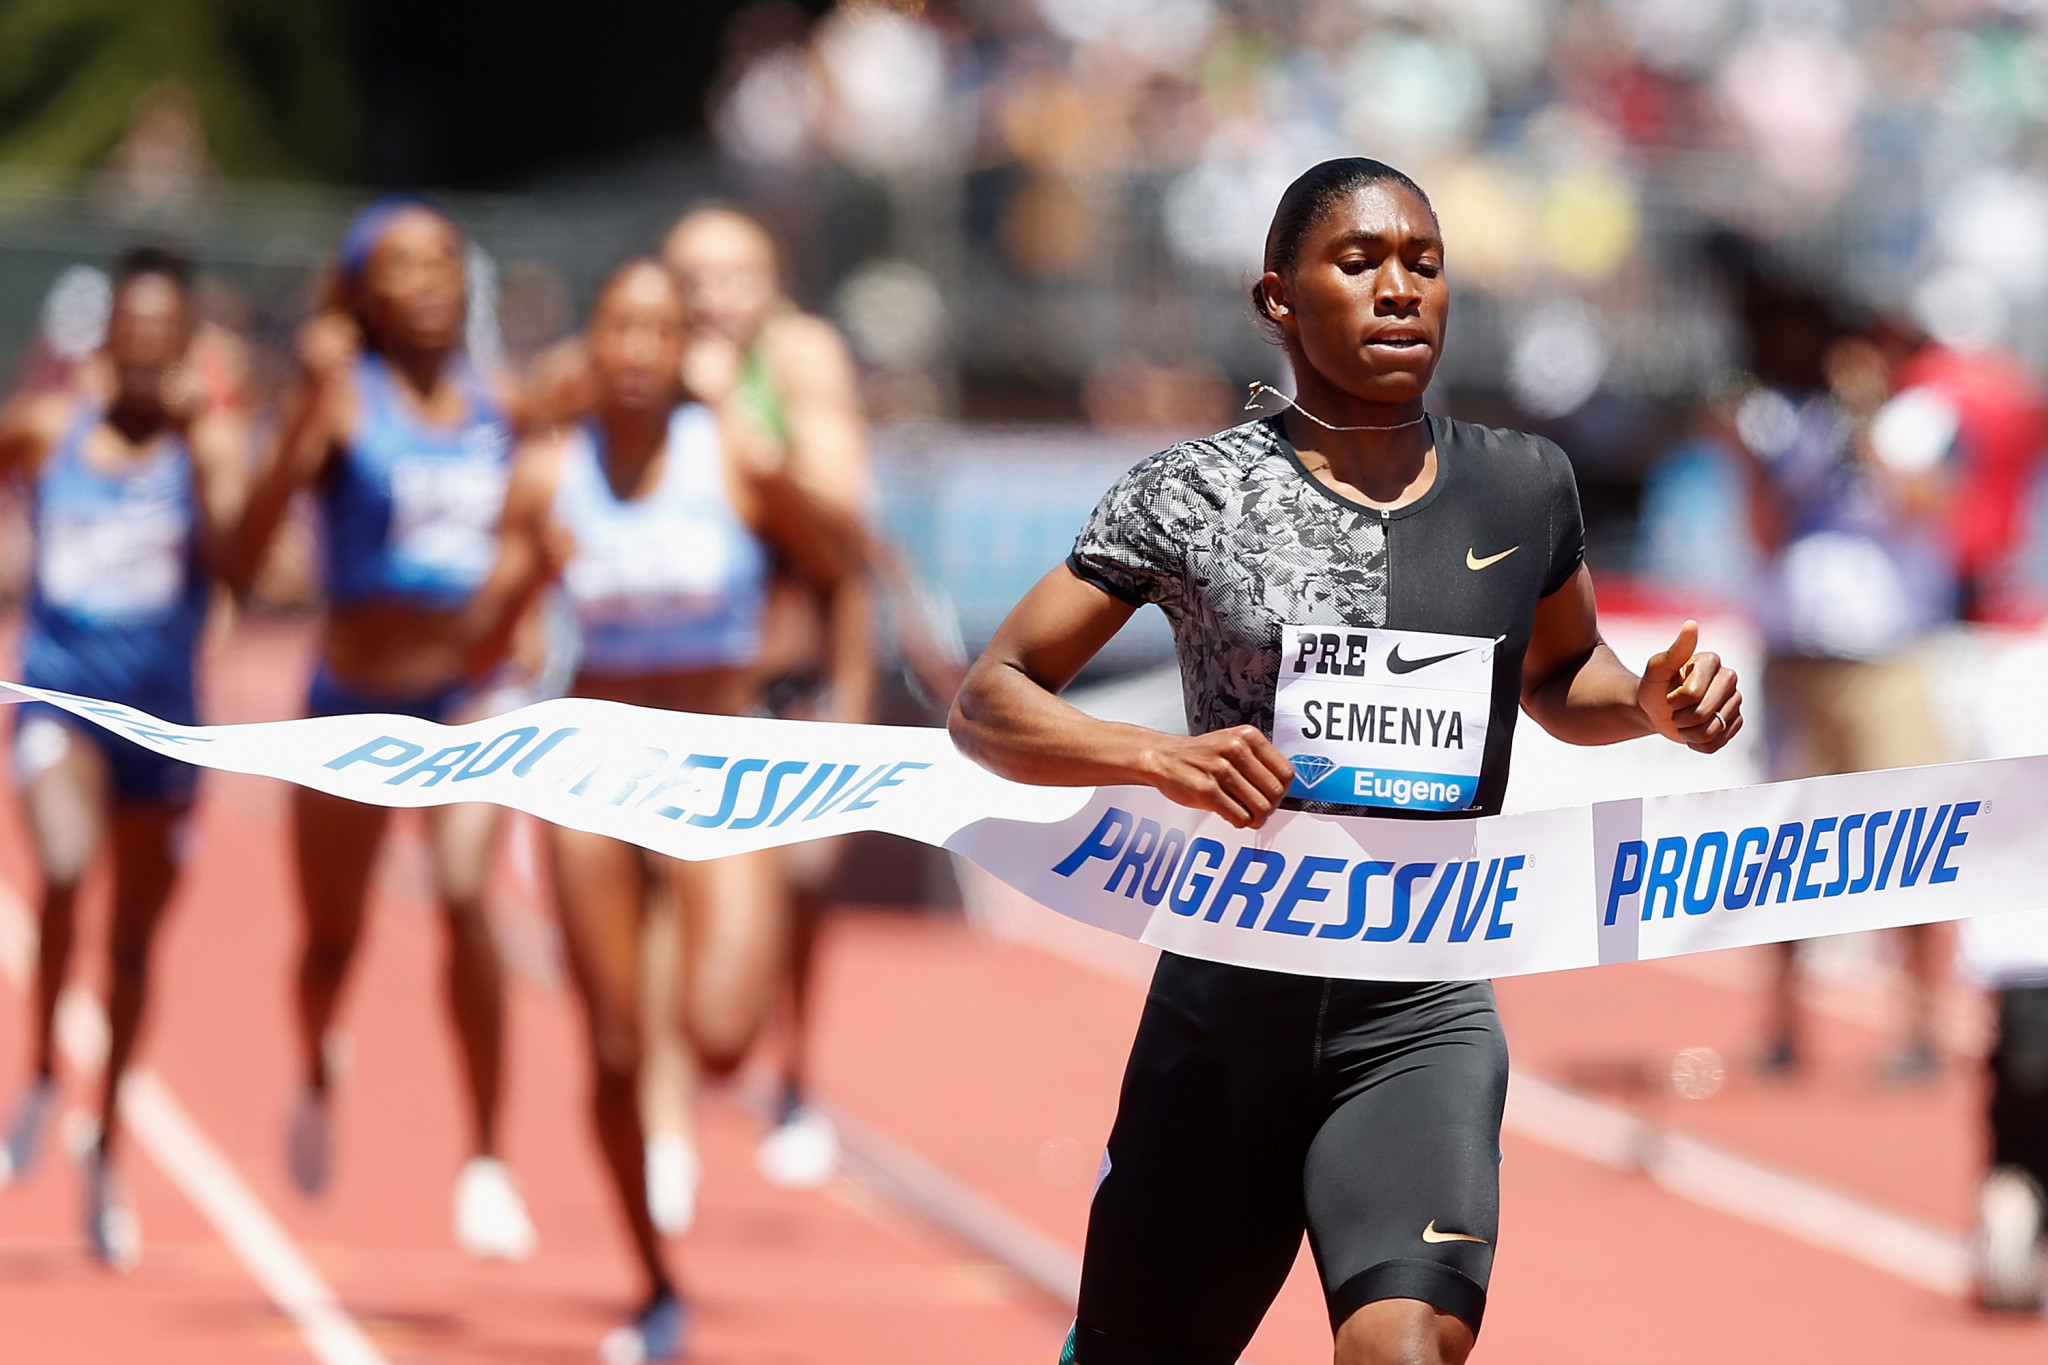 South African star Semenya set to miss IAAF World Championships after court ruling